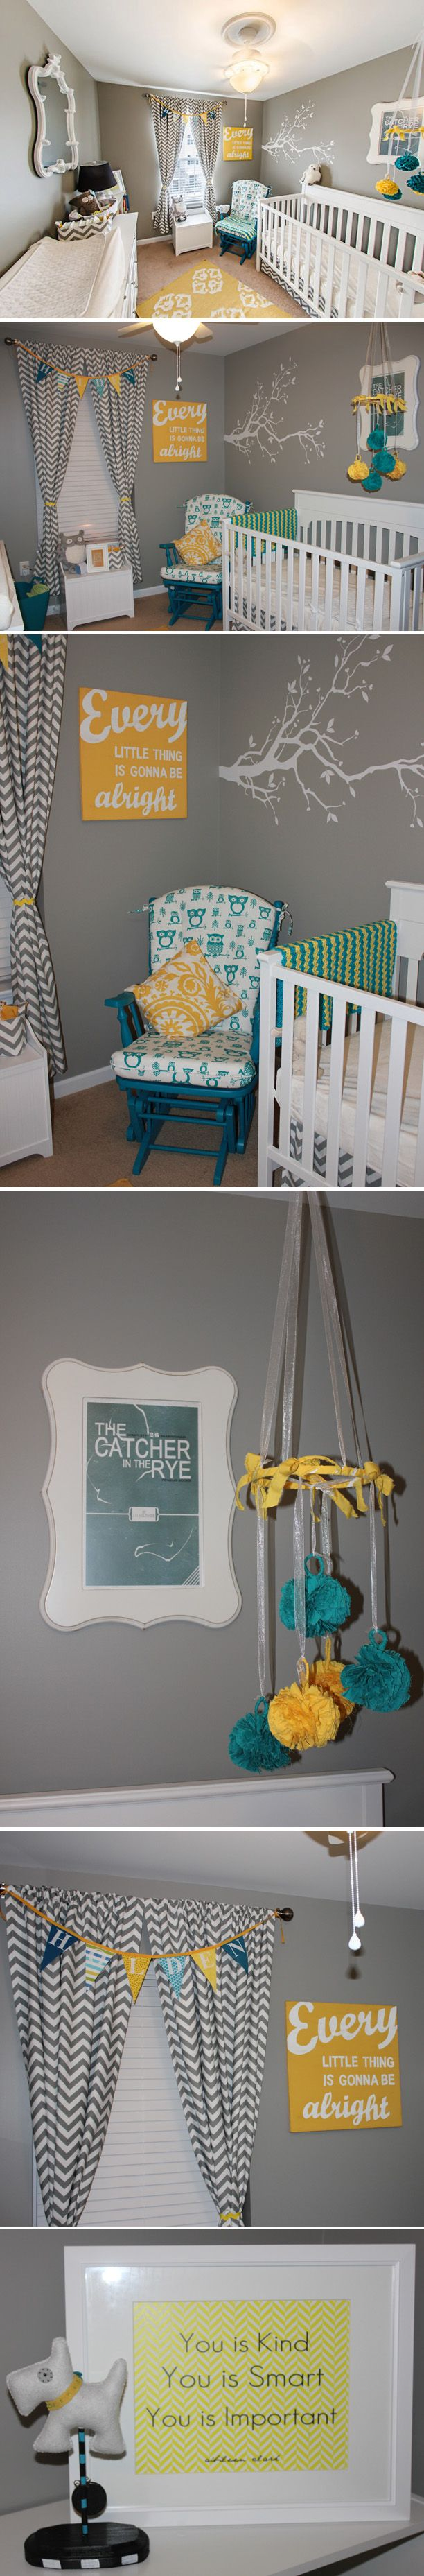 owl nursery, gender neutral nursery, gray nursery/grey nursery, literary nursery